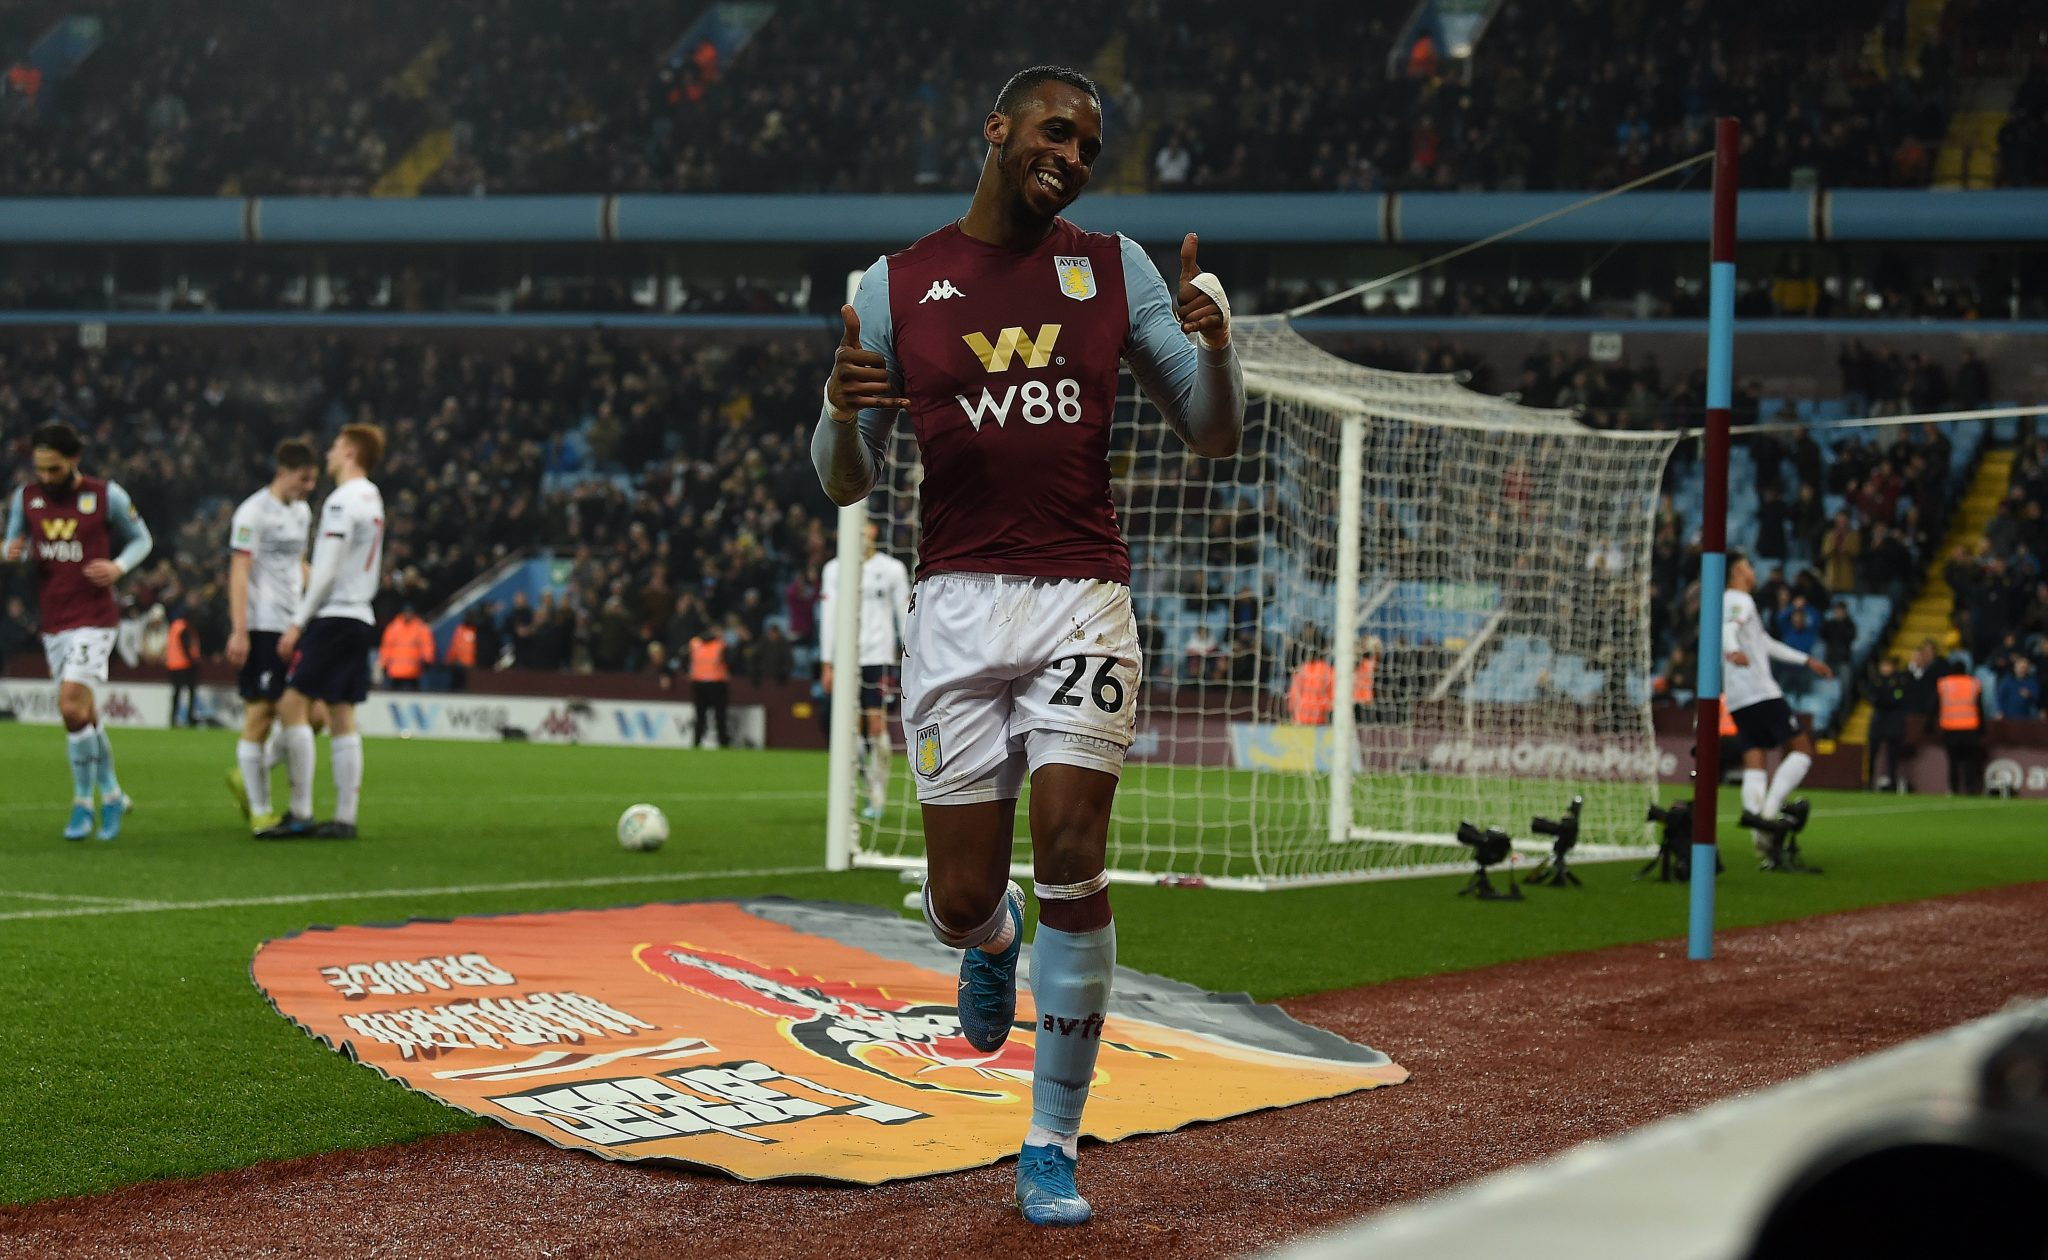 Aston Villa into last four of Carabao Cup after win